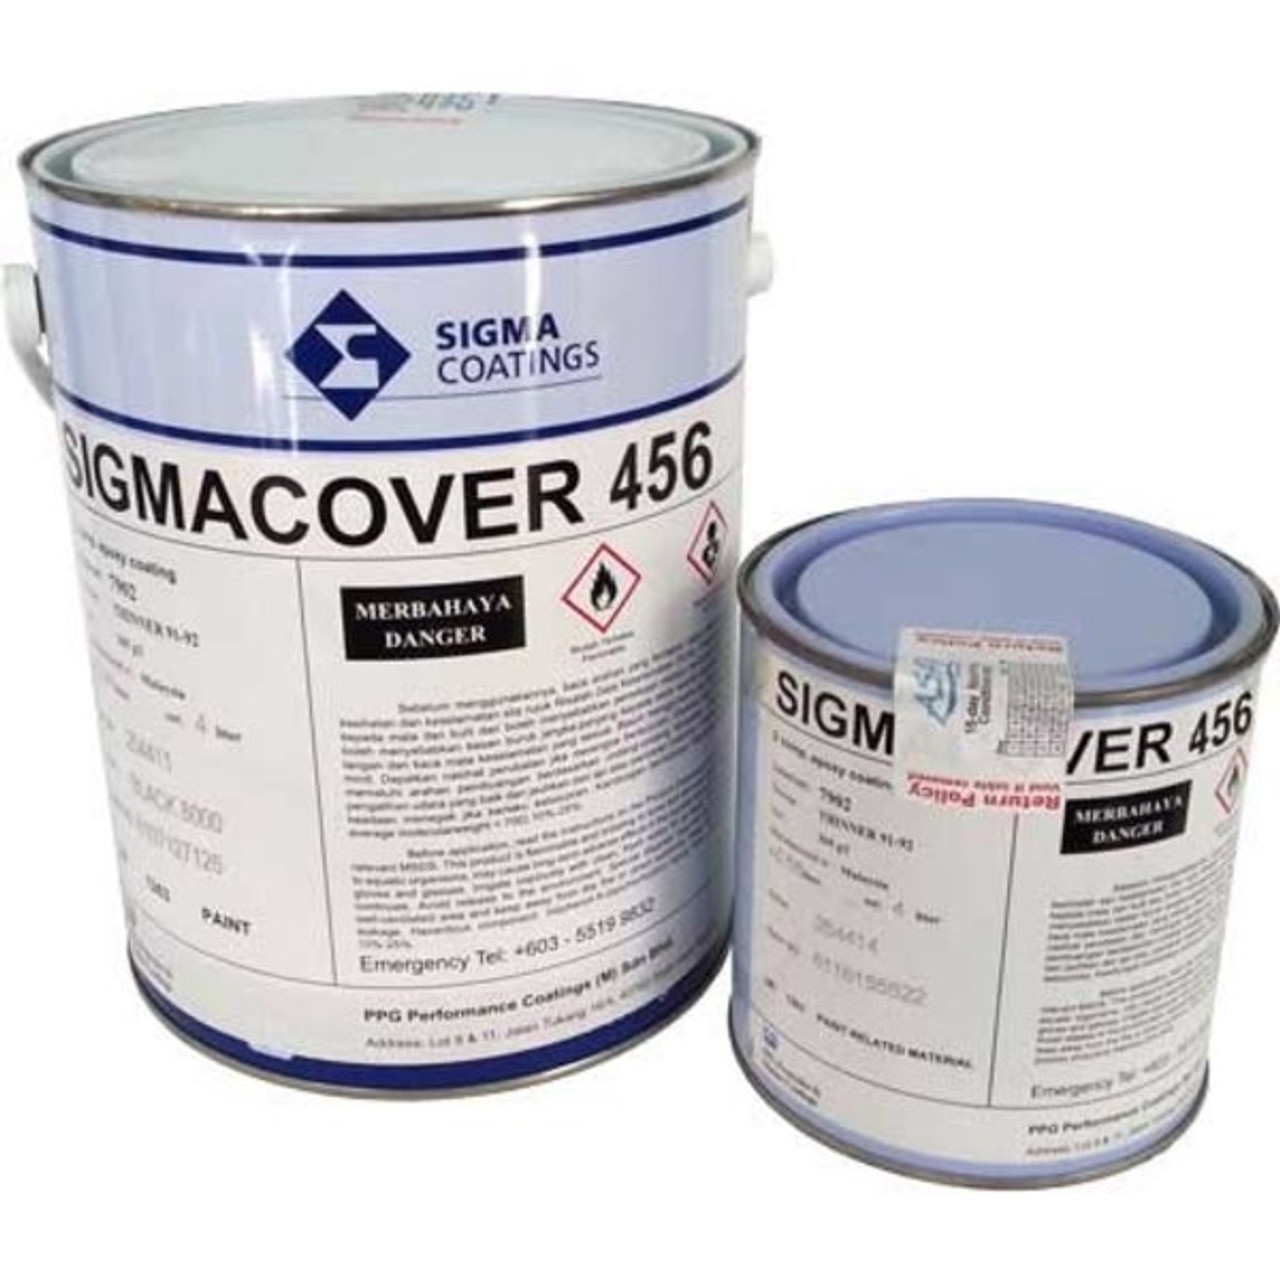 Sigmacover 456 Sigma Marine paint- GZ Industrial Supplies